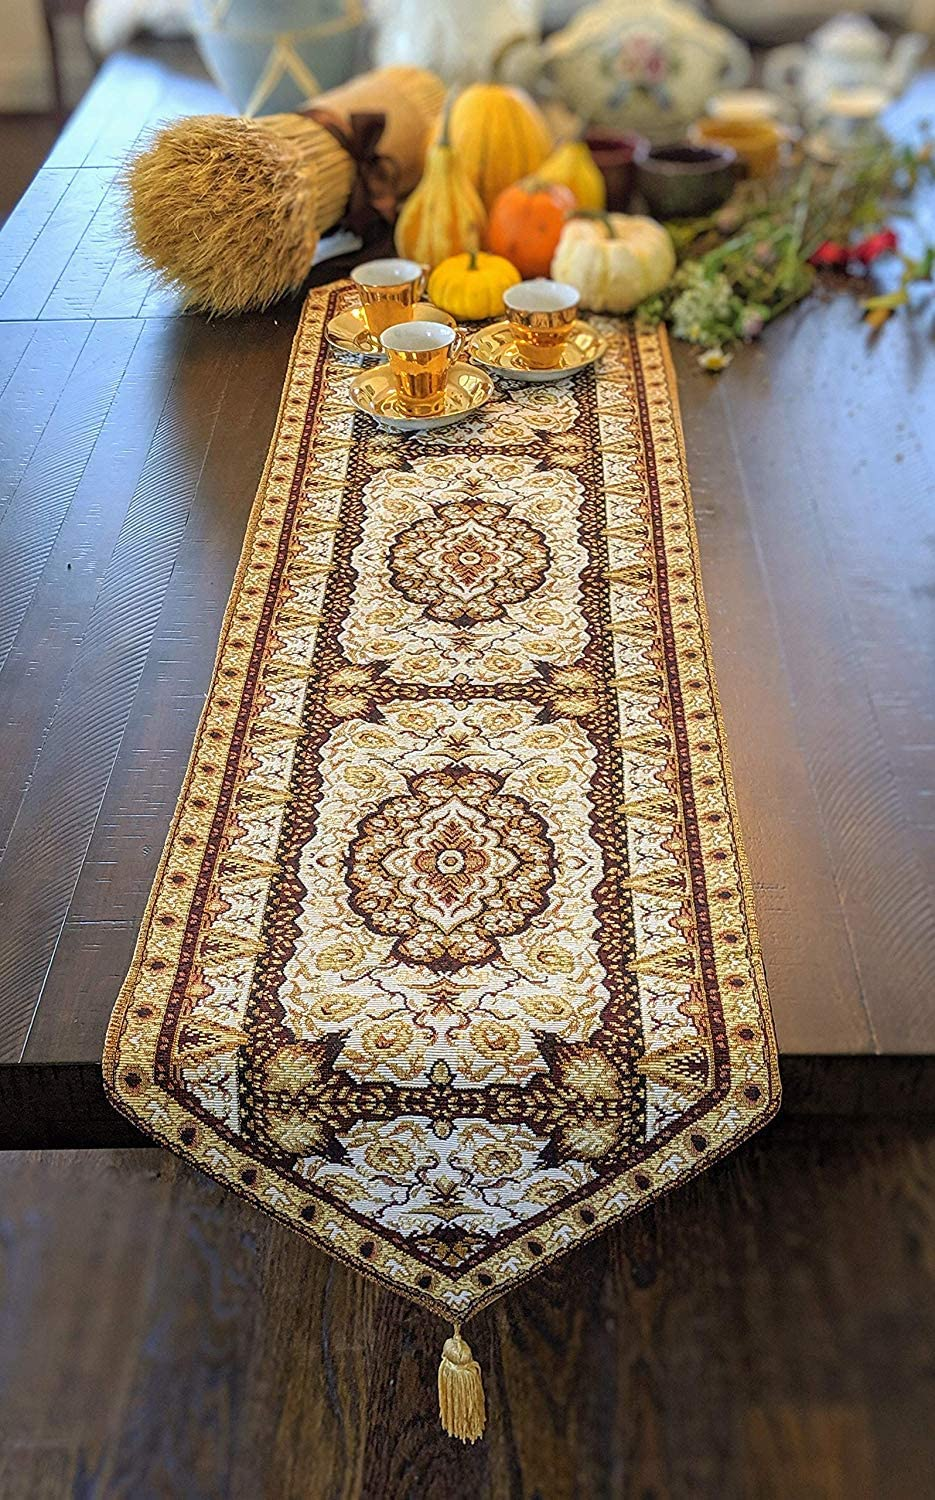 """DaDa Bedding Elegant Tapestry Table Runner - Intricate Royal Persian Rug Golden Opulence - Decorative Floral Damask Cotton Linen Woven Dining Mats - 13"""" x 54"""": Home & Kitchen"""